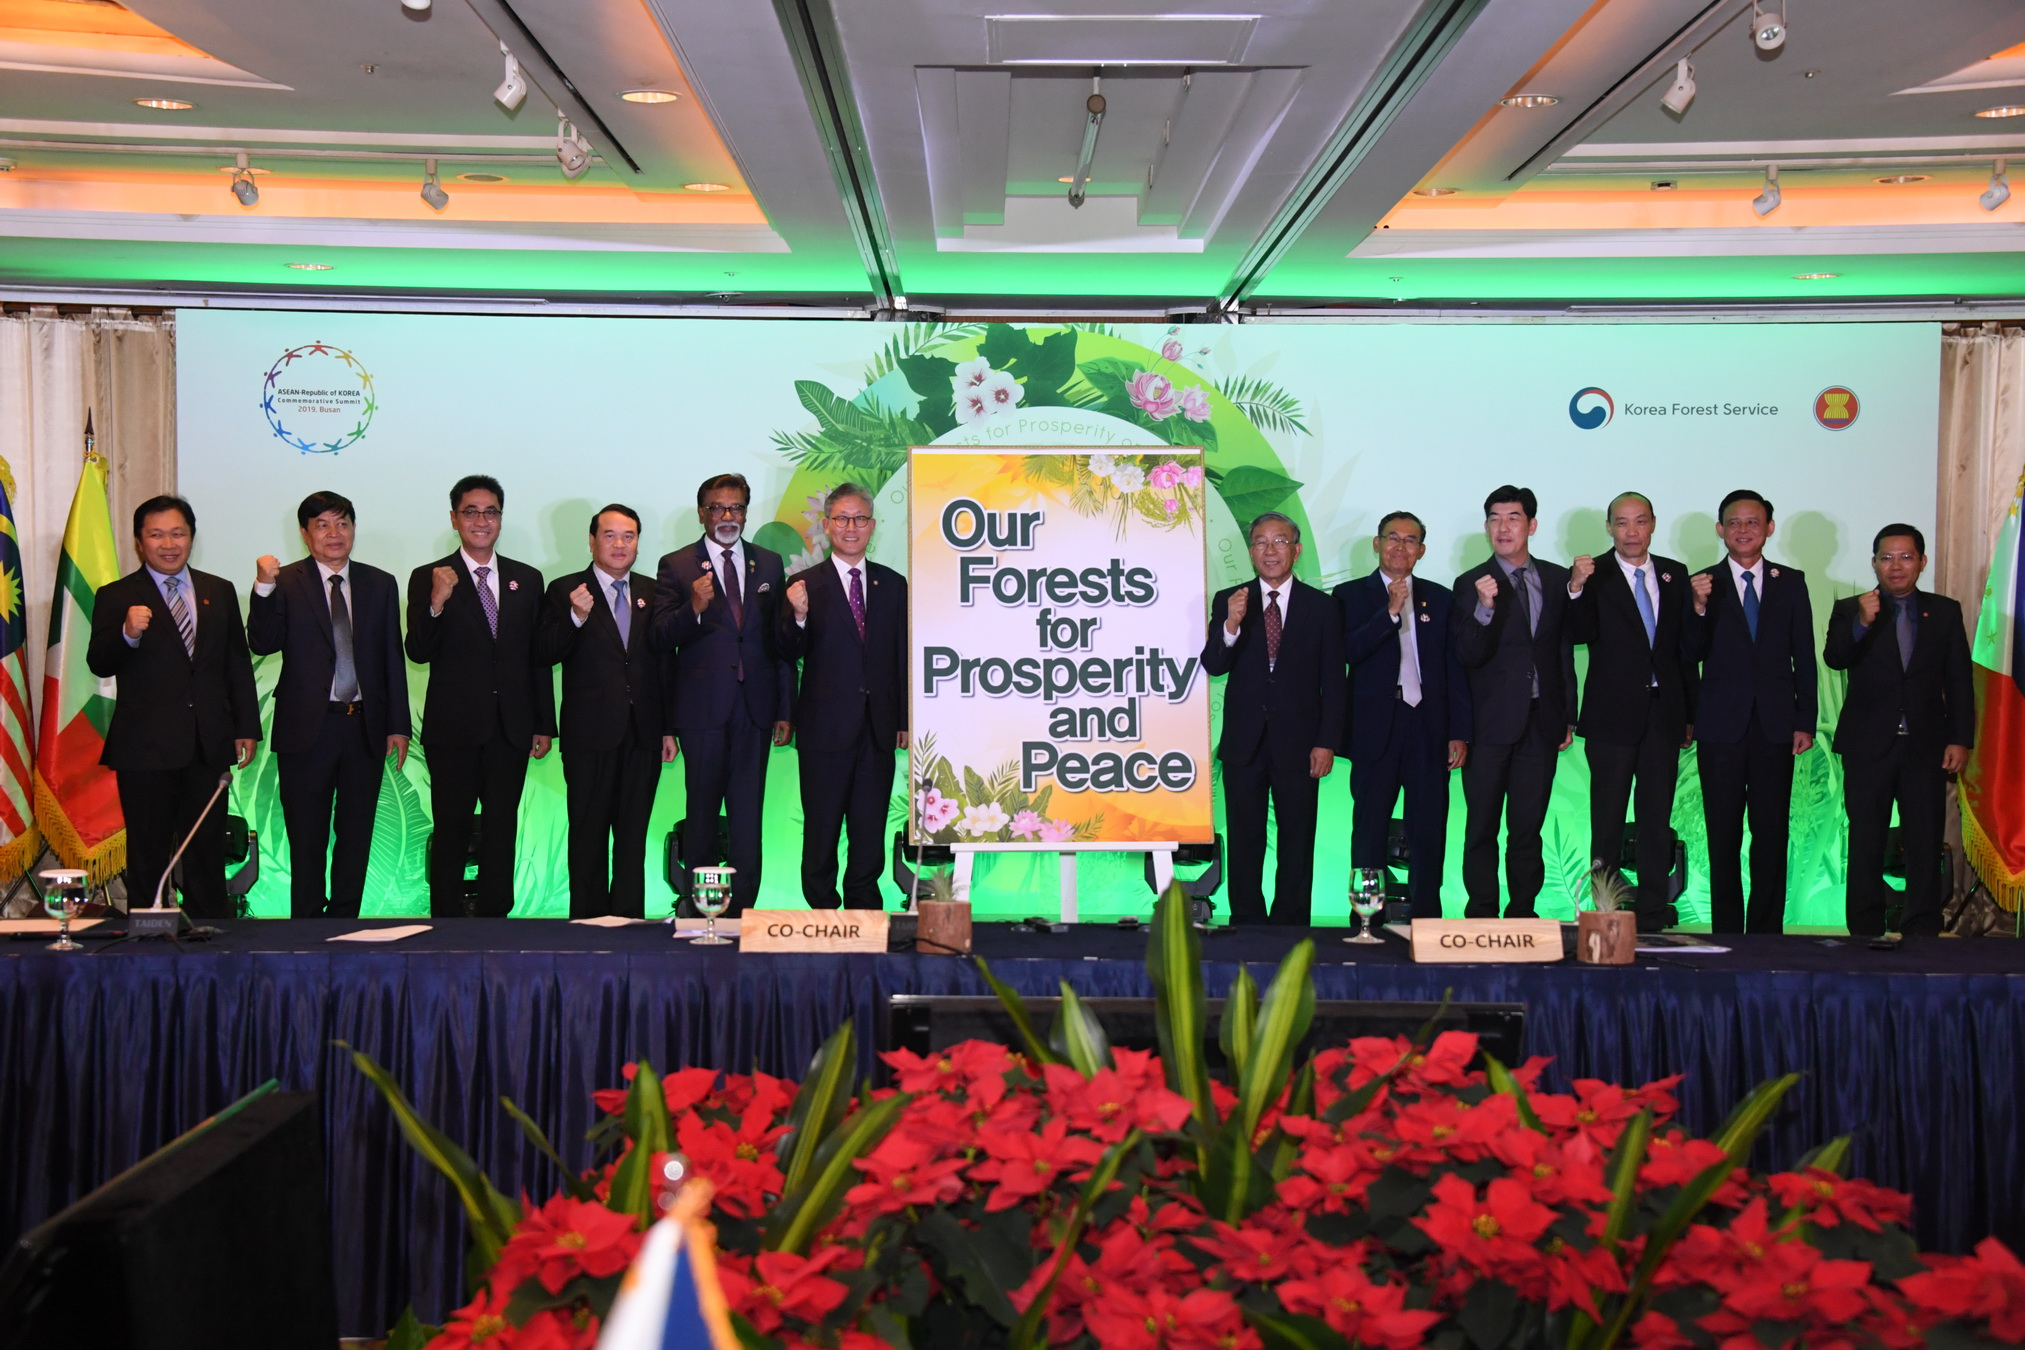 ASEAN-ROK High Level Meeting on Forestry 2019